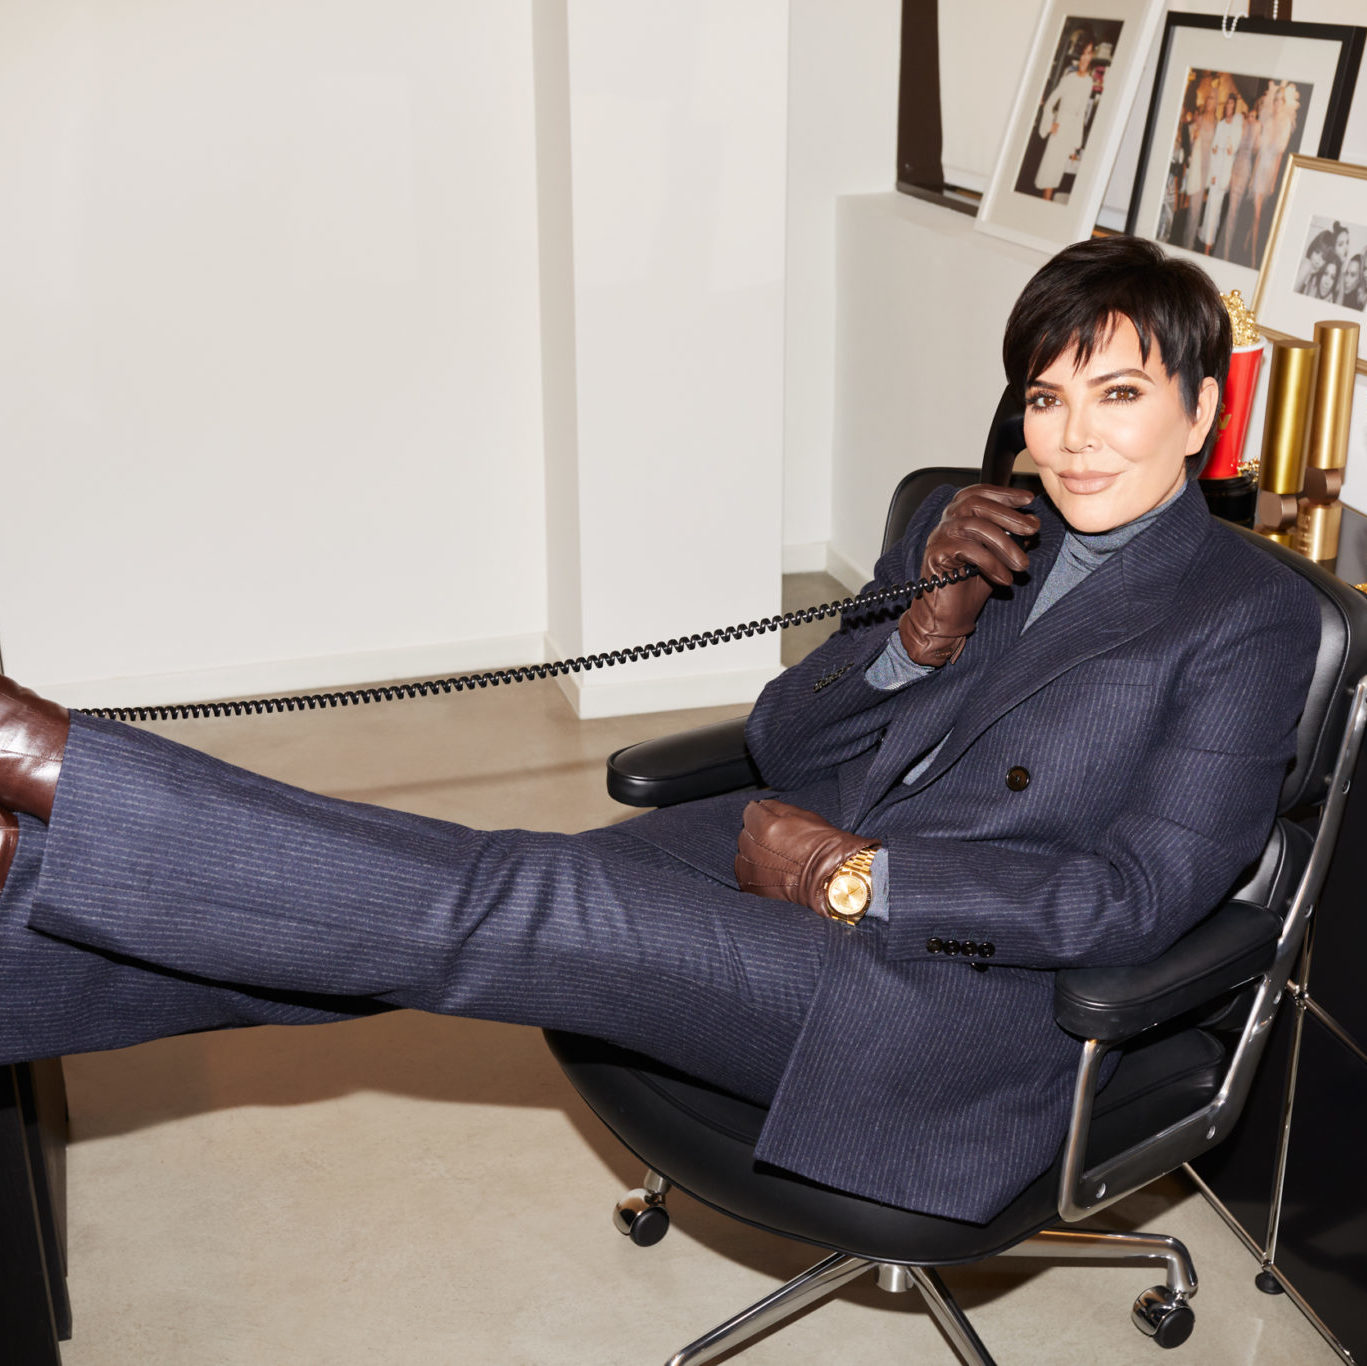 kris-jenner-net-worth-and-more-wsj-magazine-skincare-makeup-line-style-rave